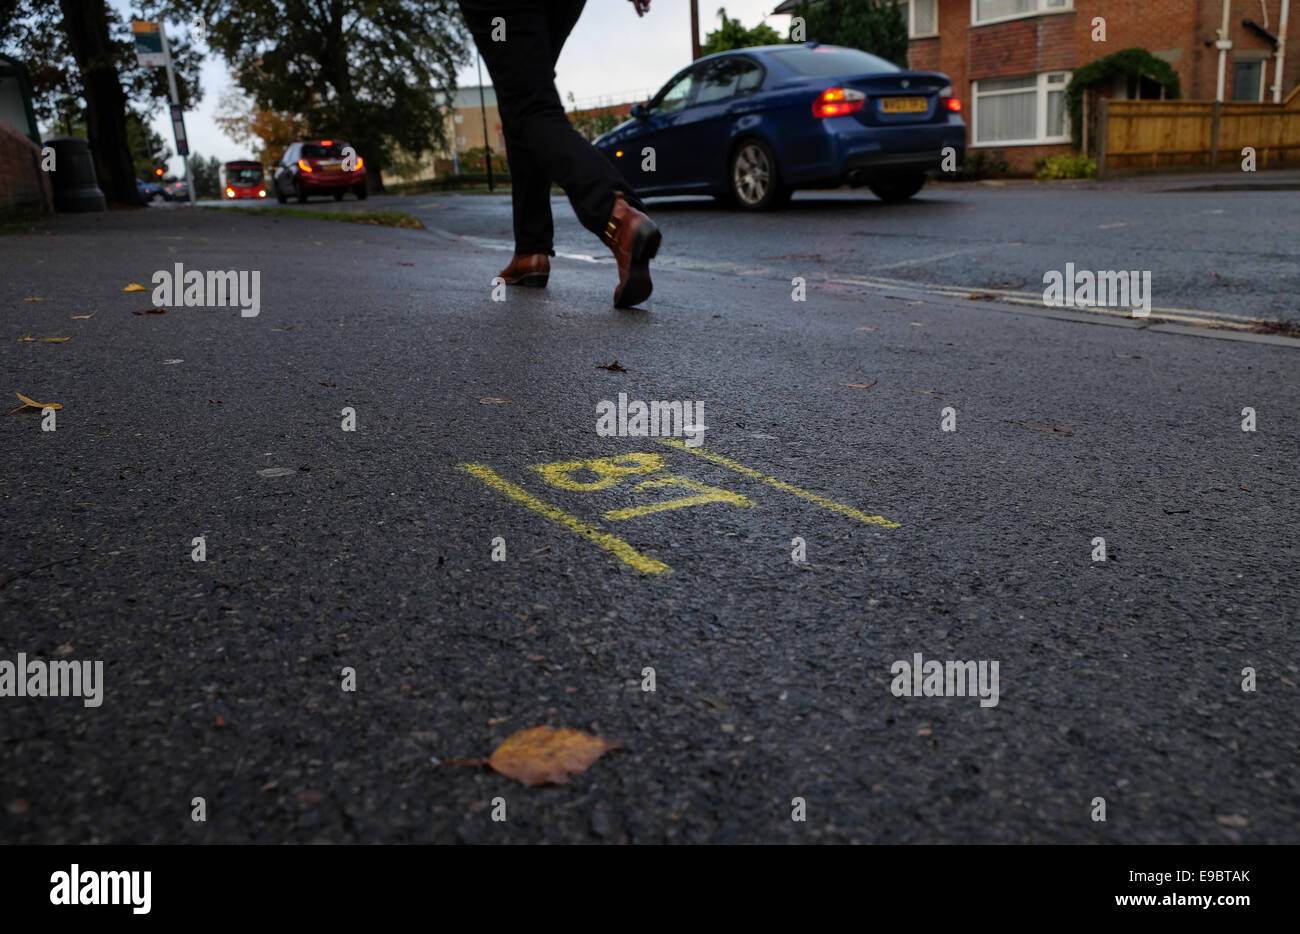 Pre markings on pavements and roads before works begin for service providers to dig up roads - Stock Image